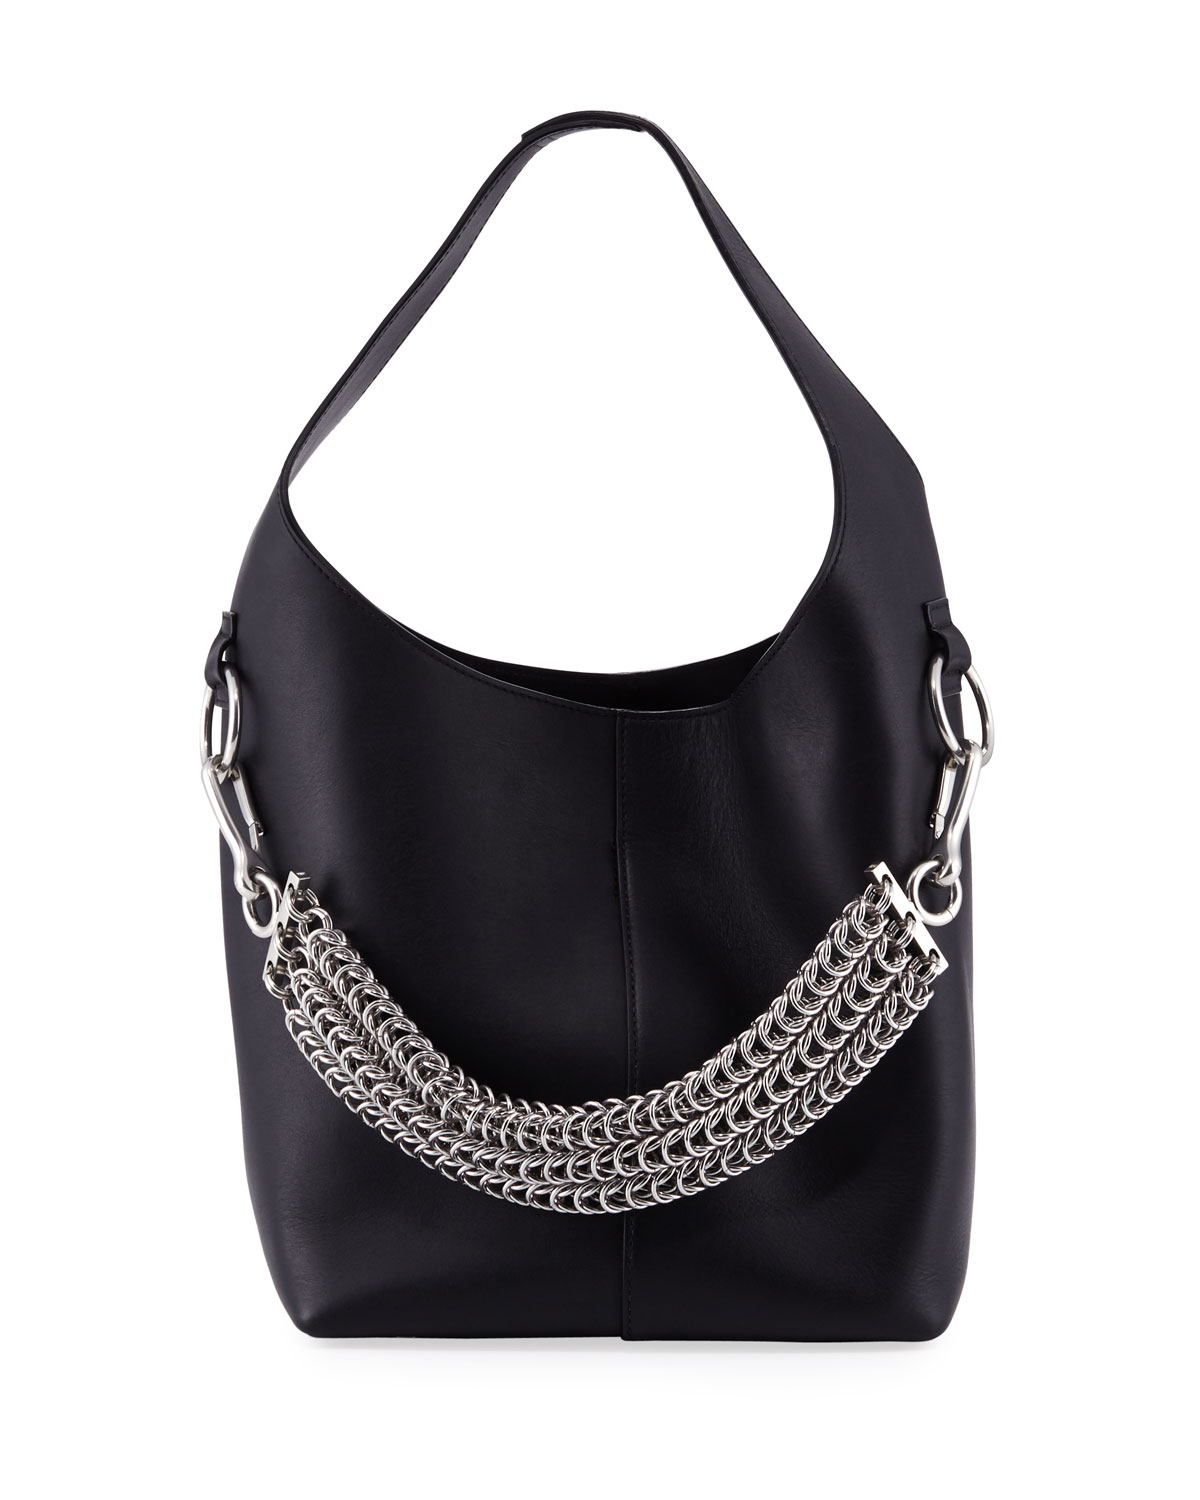 0150ed29aed Alexander Wang Genesis Box Chain Extra Large Hobo Bag, Black ...